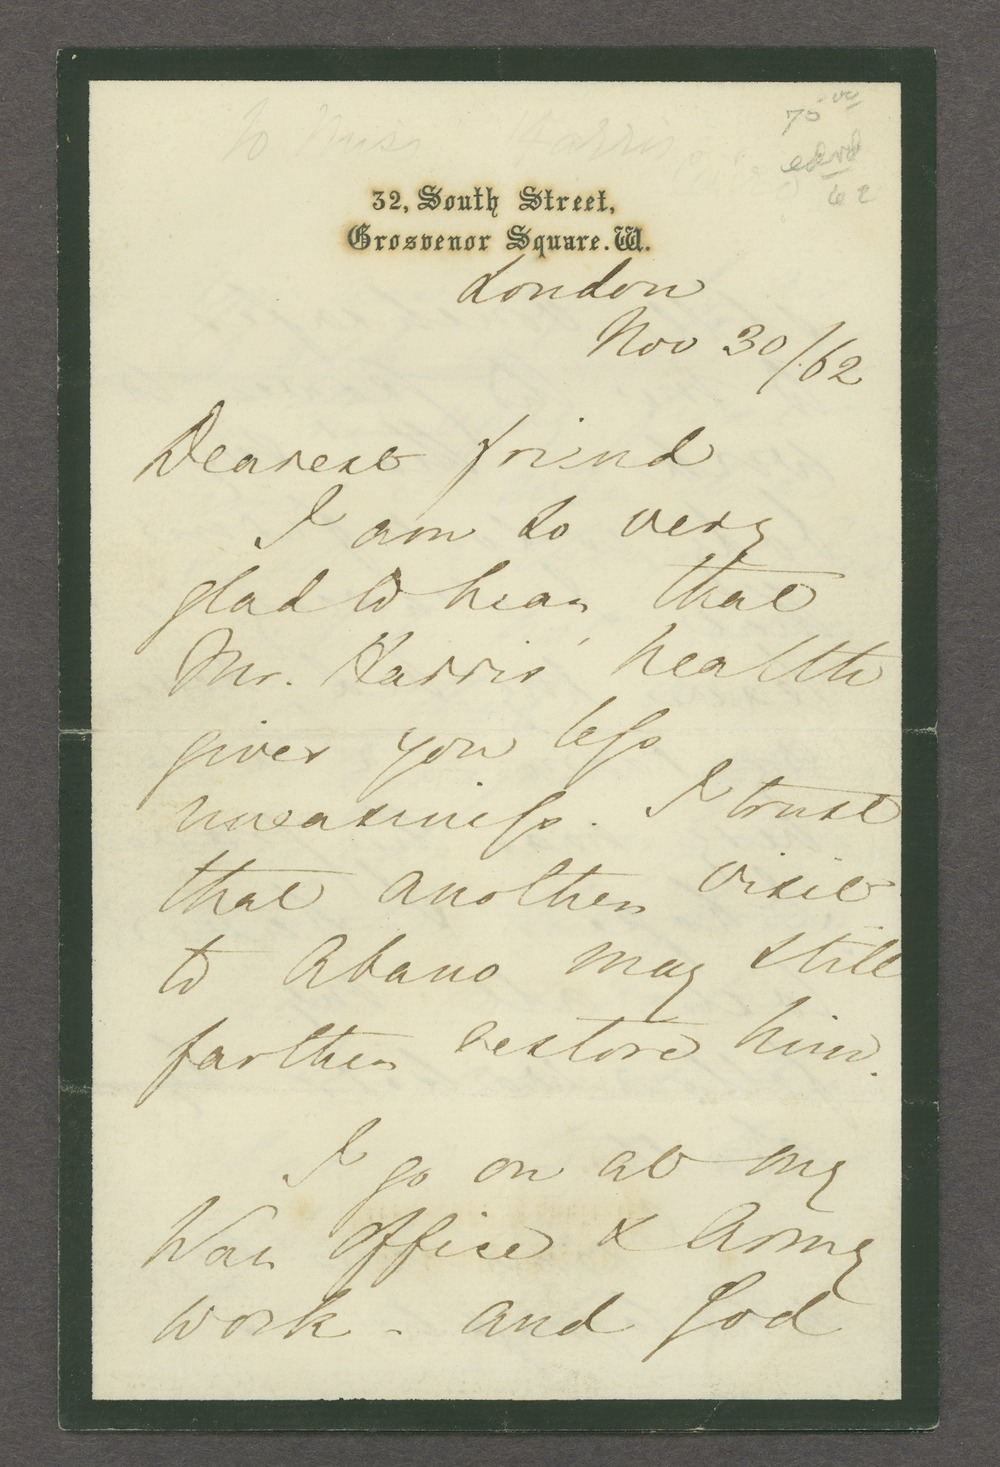 Florence Nightingale correspondence - 1 [Box 1 Folder 5]